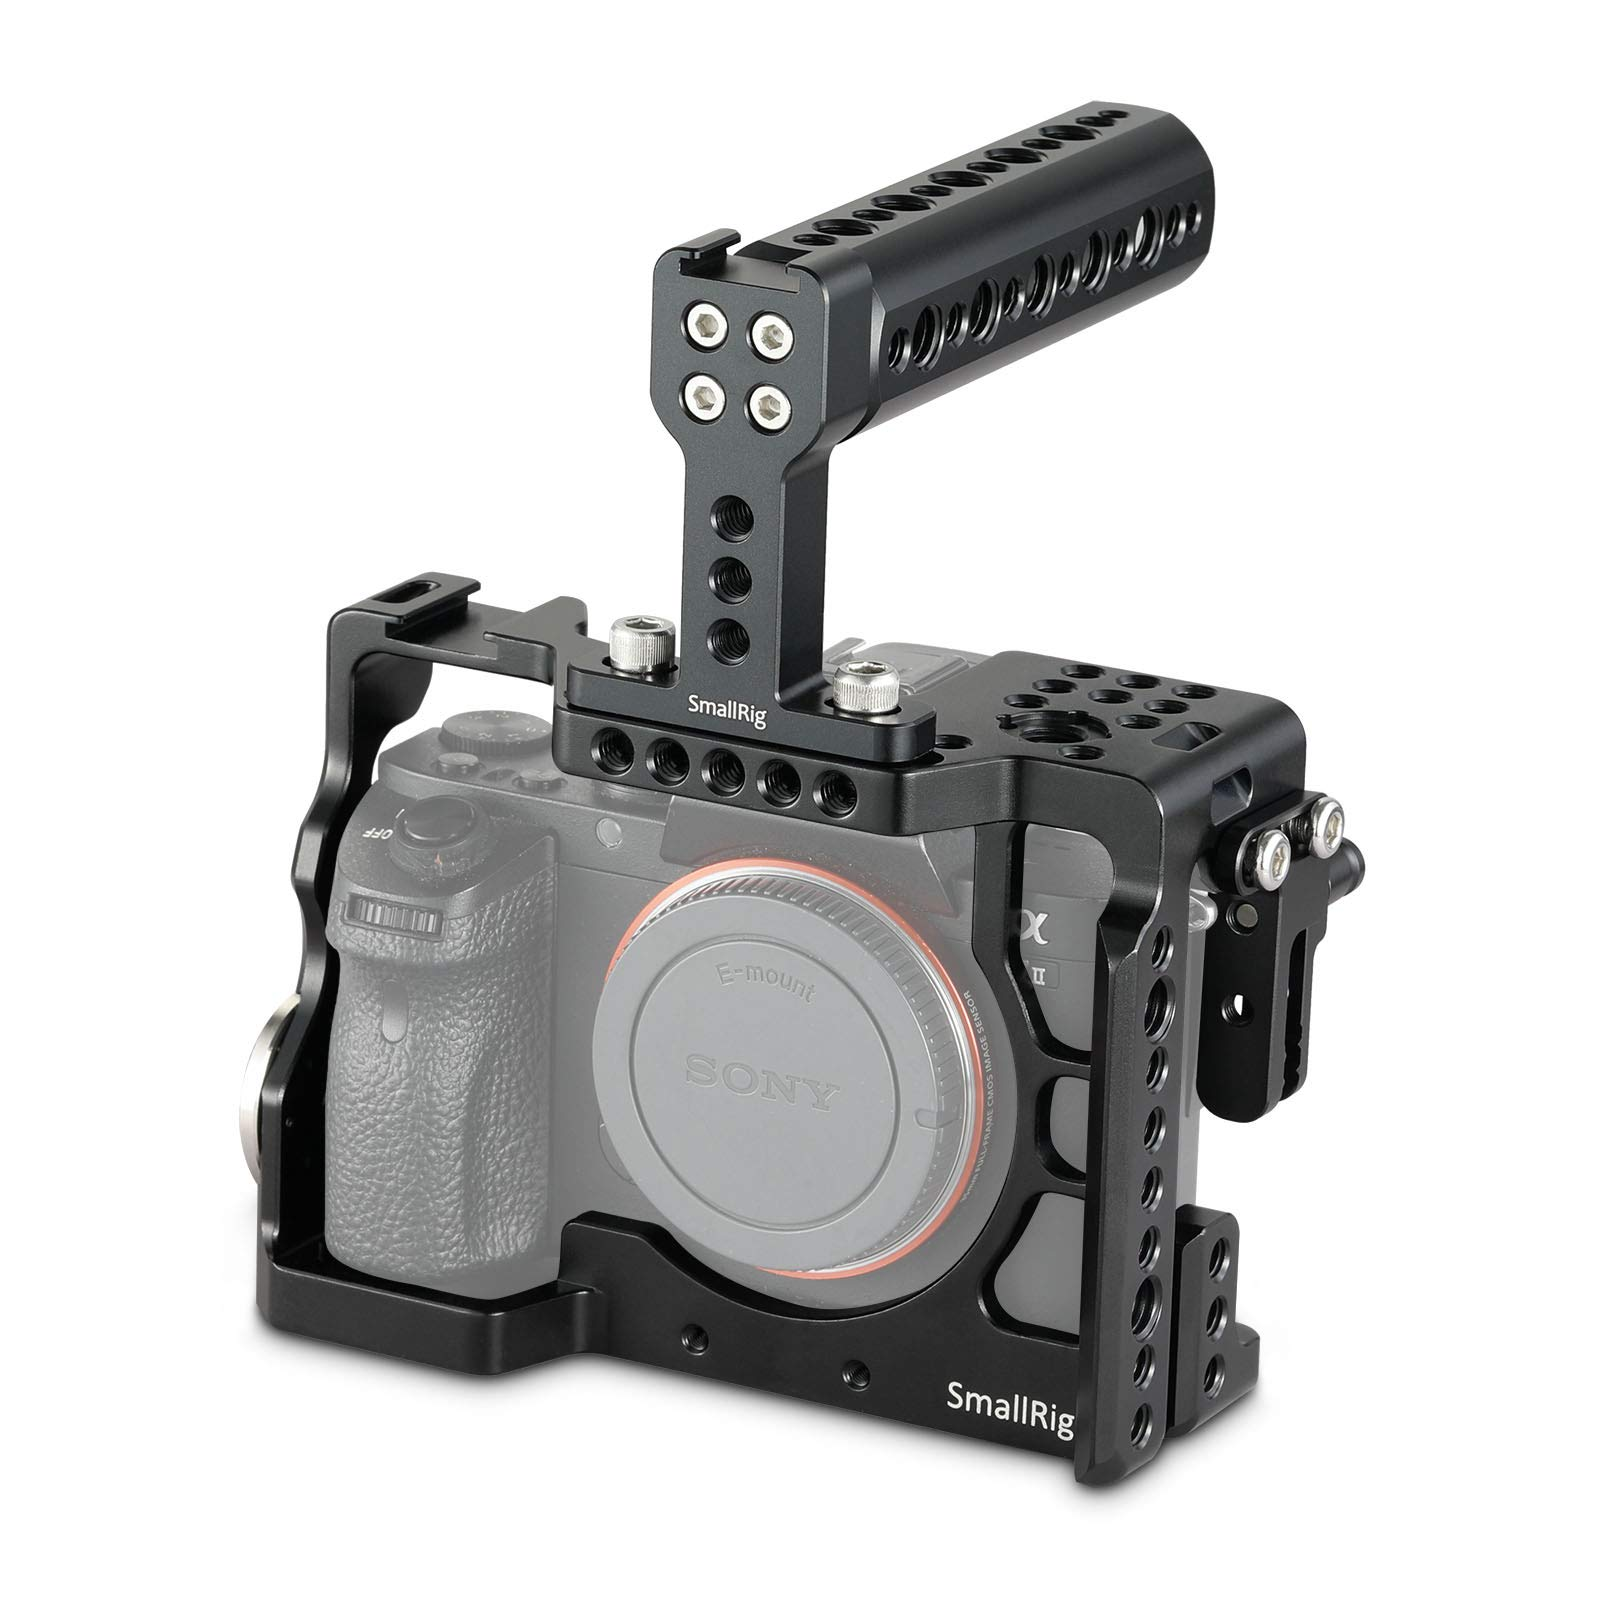 SMALLRIG 2014 Camera Cage for Sony Alpha A7 II/A7R II/A7S...